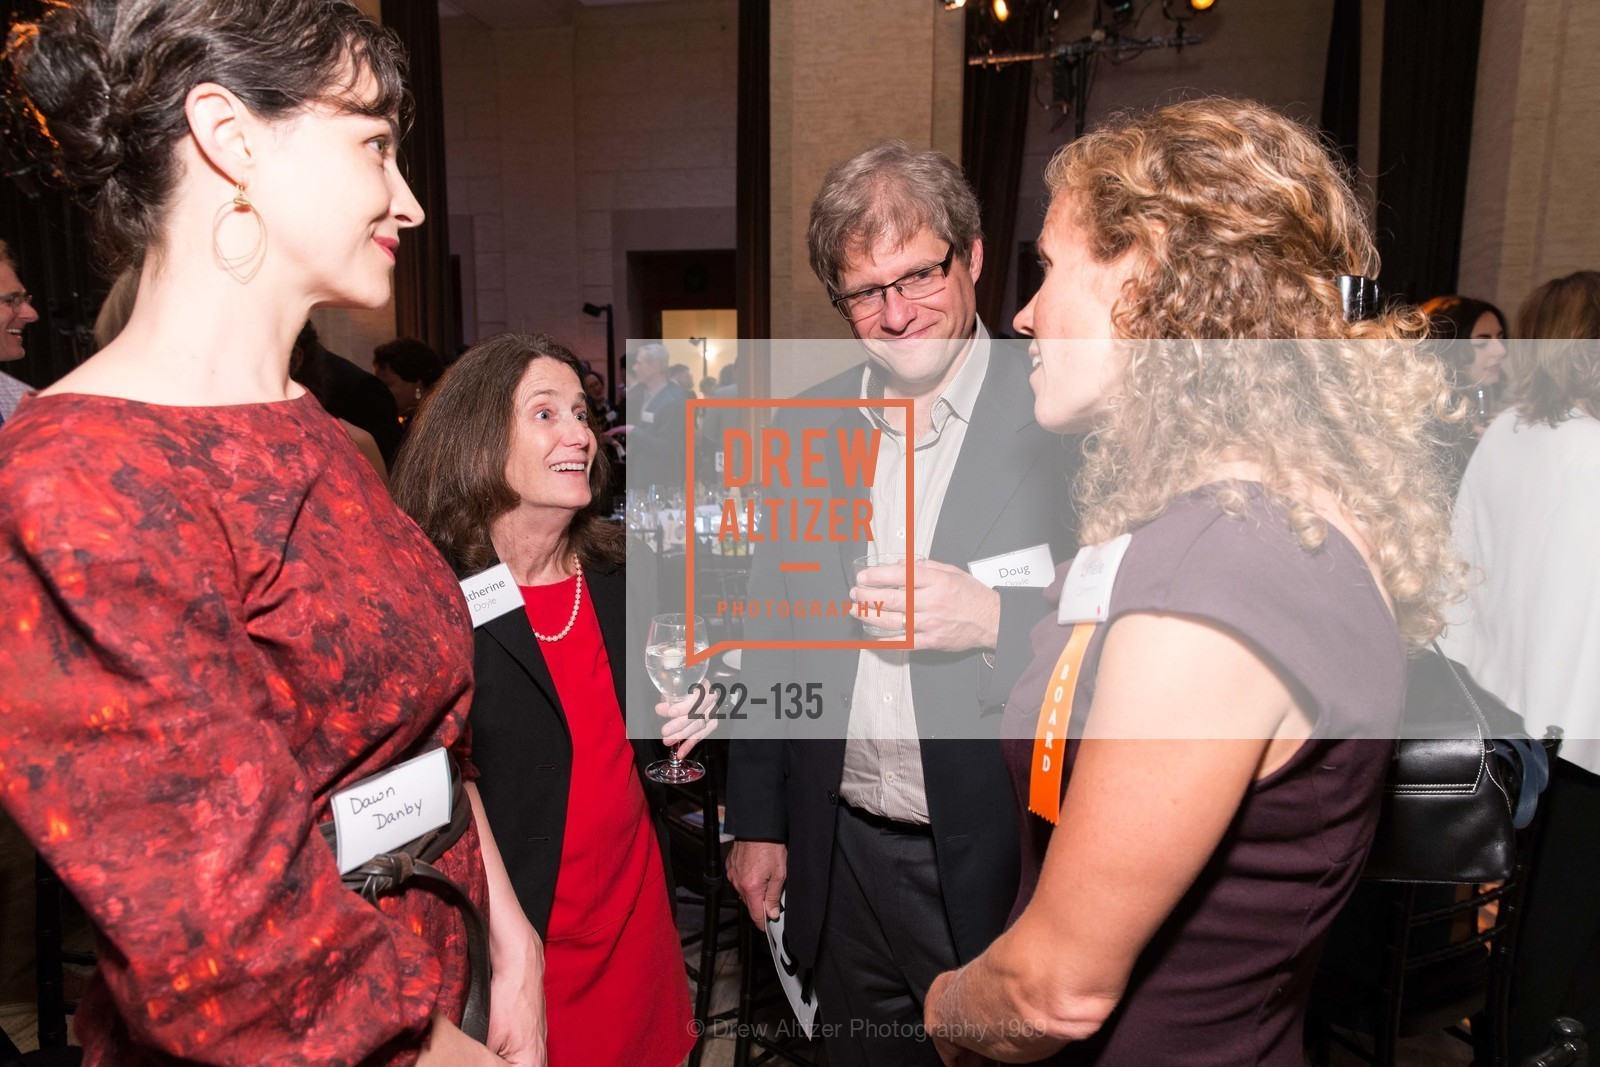 Dawn Danby, Catherine Doyle, Doug Doyle, Lynele Cameron, Center for Environmental Health  2015 Gala, Bently Reserve, May 27th, 2015,Drew Altizer, Drew Altizer Photography, full-service agency, private events, San Francisco photographer, photographer california